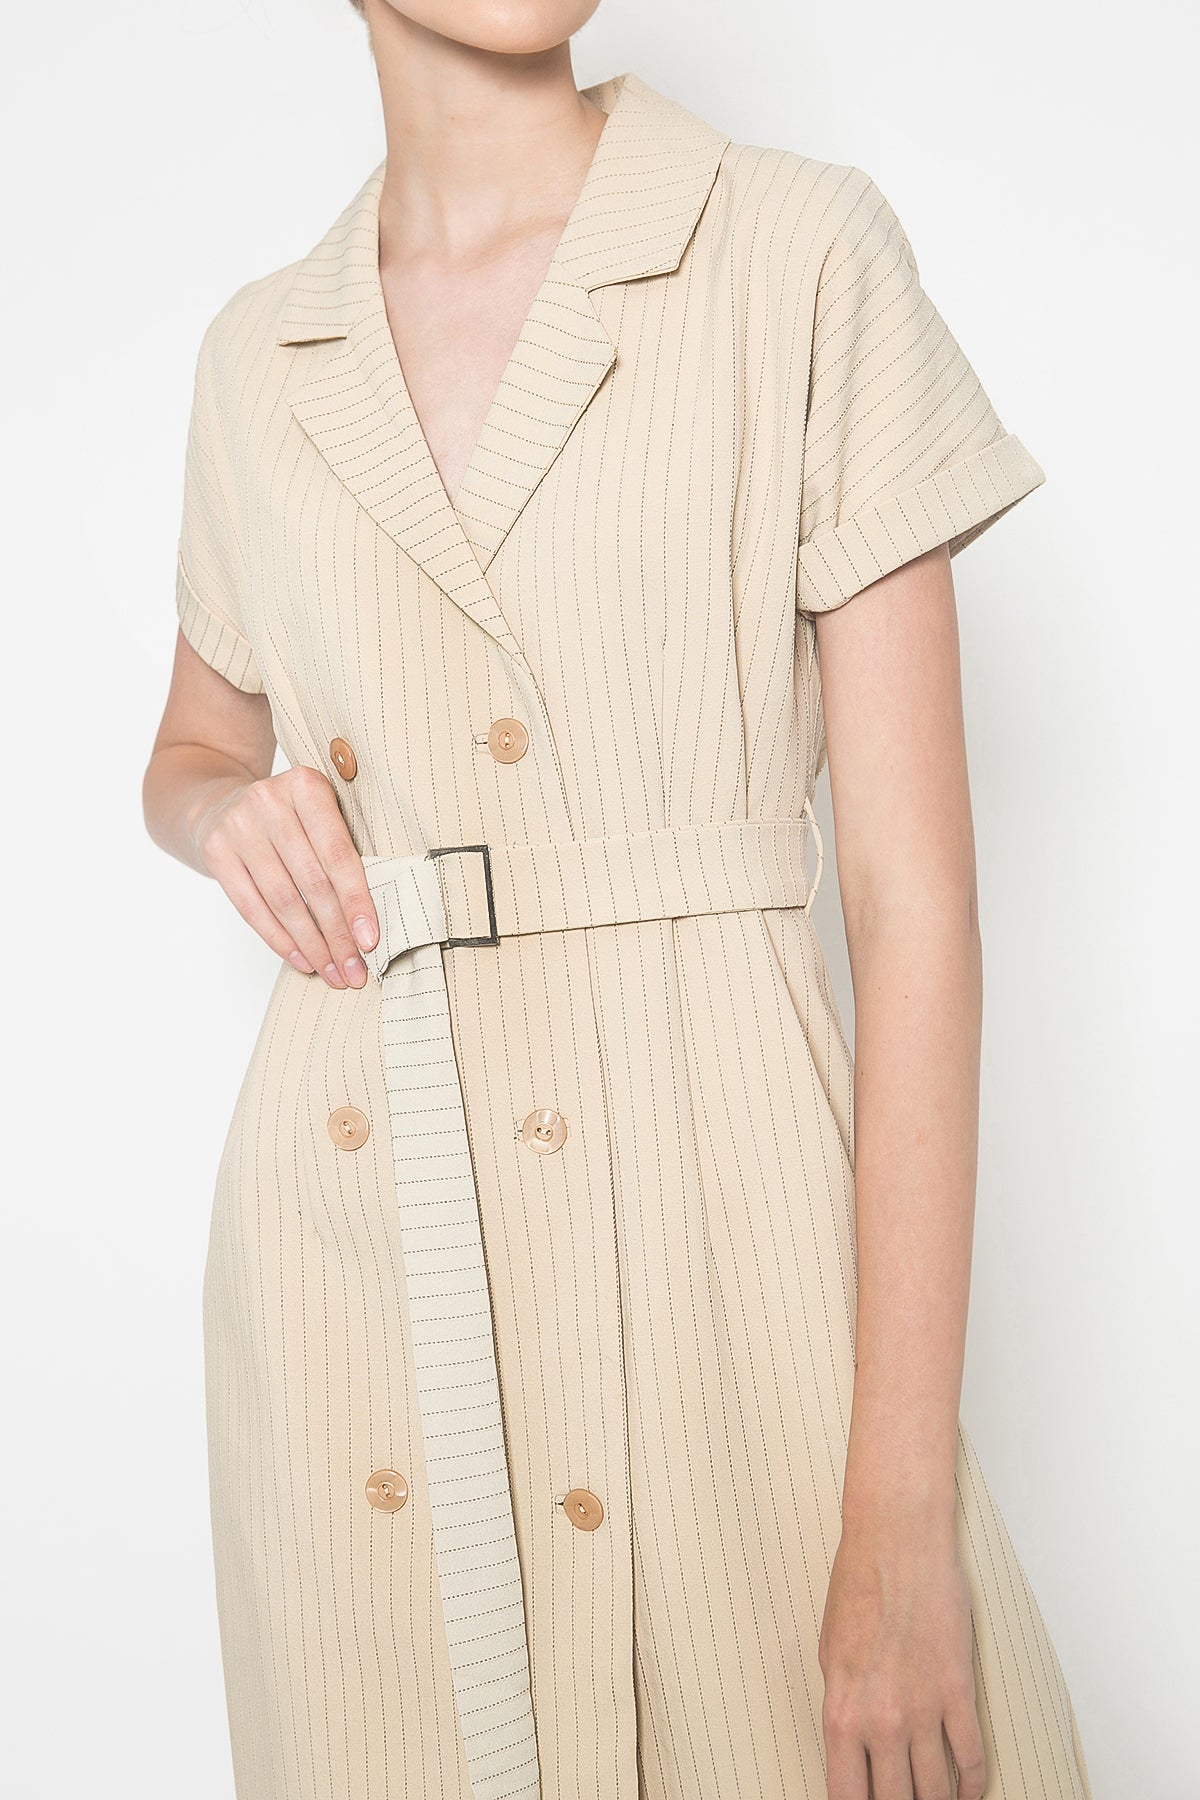 Dauphine Dress in Wheat Brown